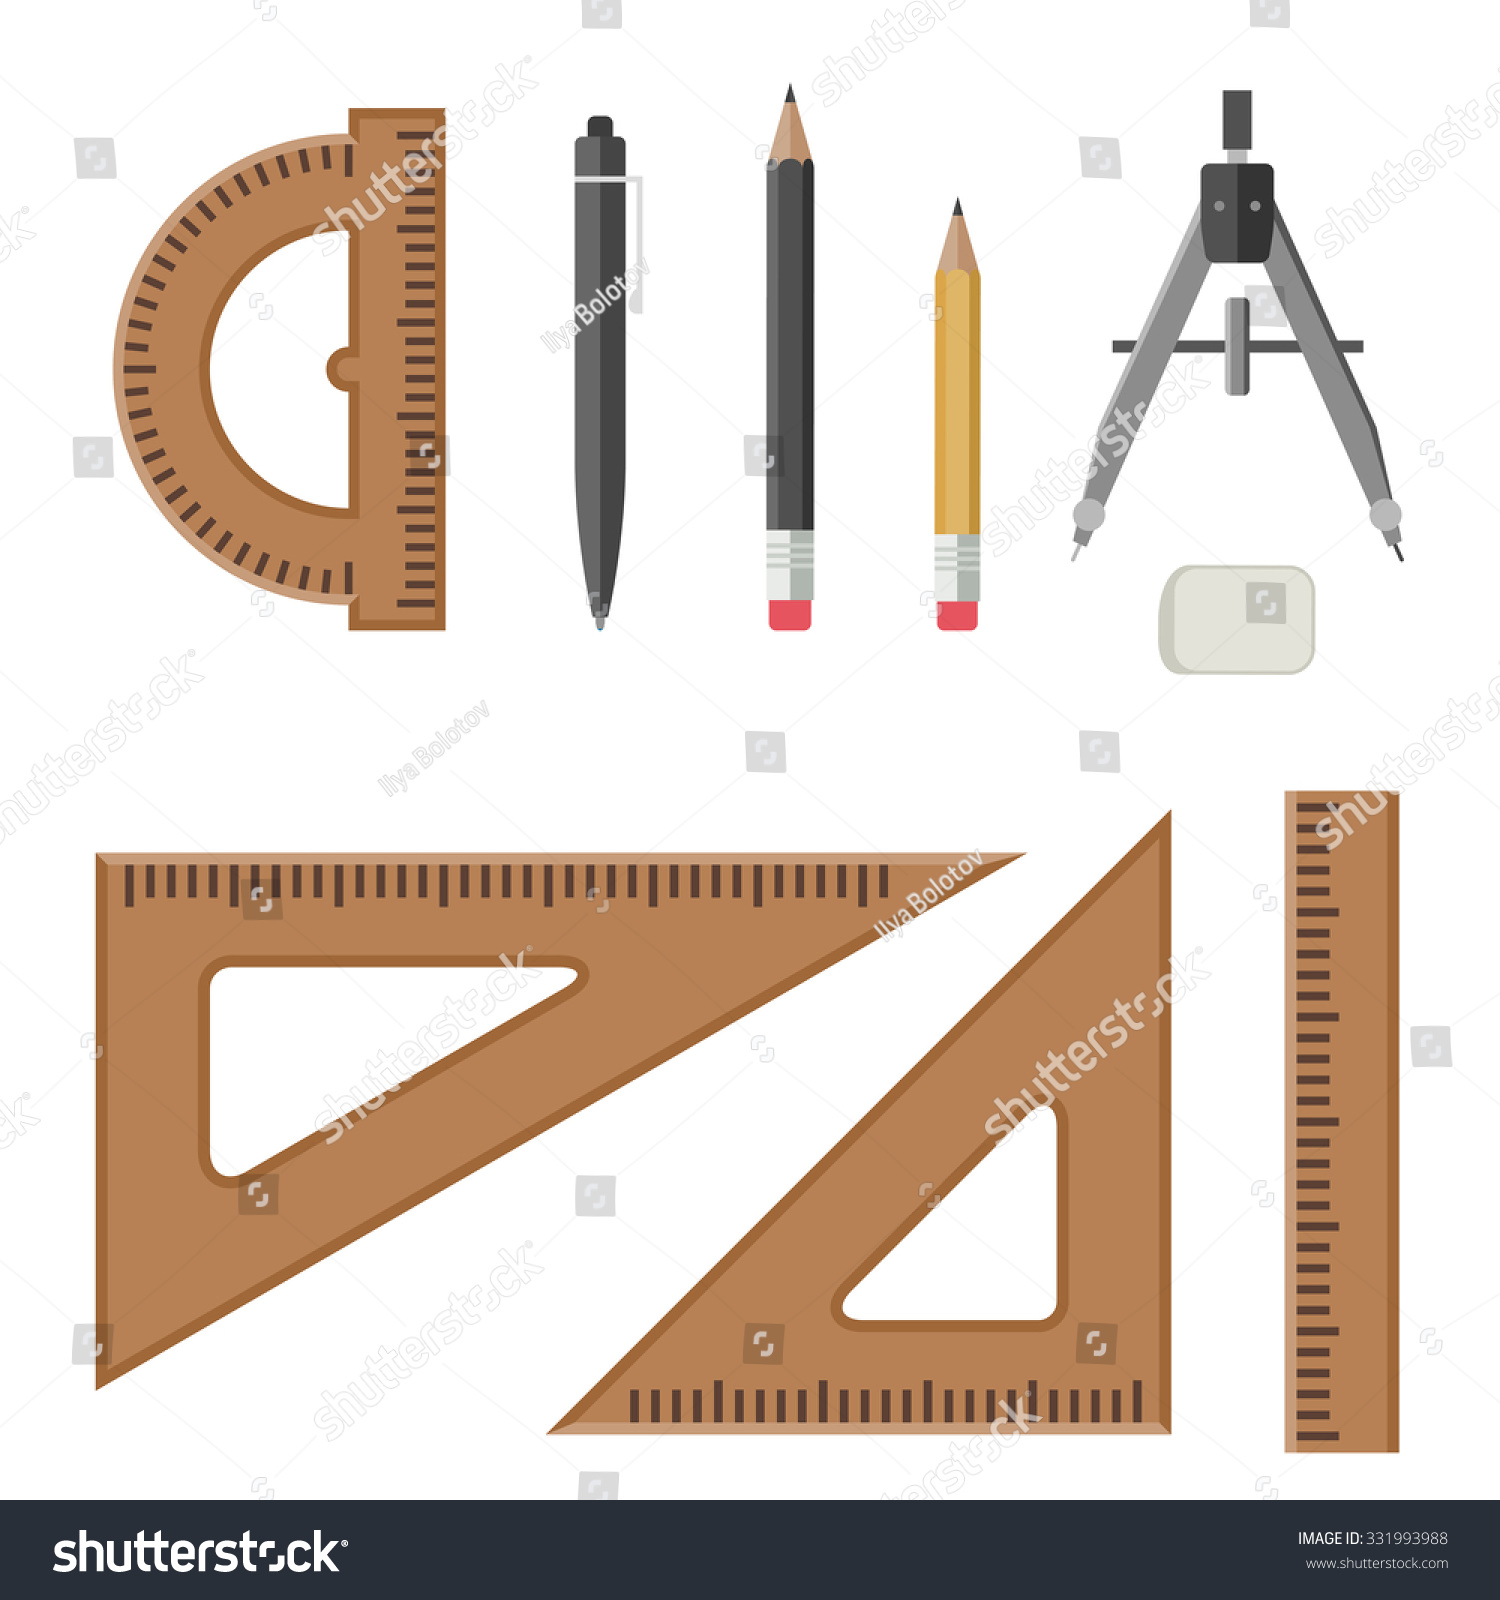 Drawing equipment flat style architectural workplace stock for Architecture drawing tools